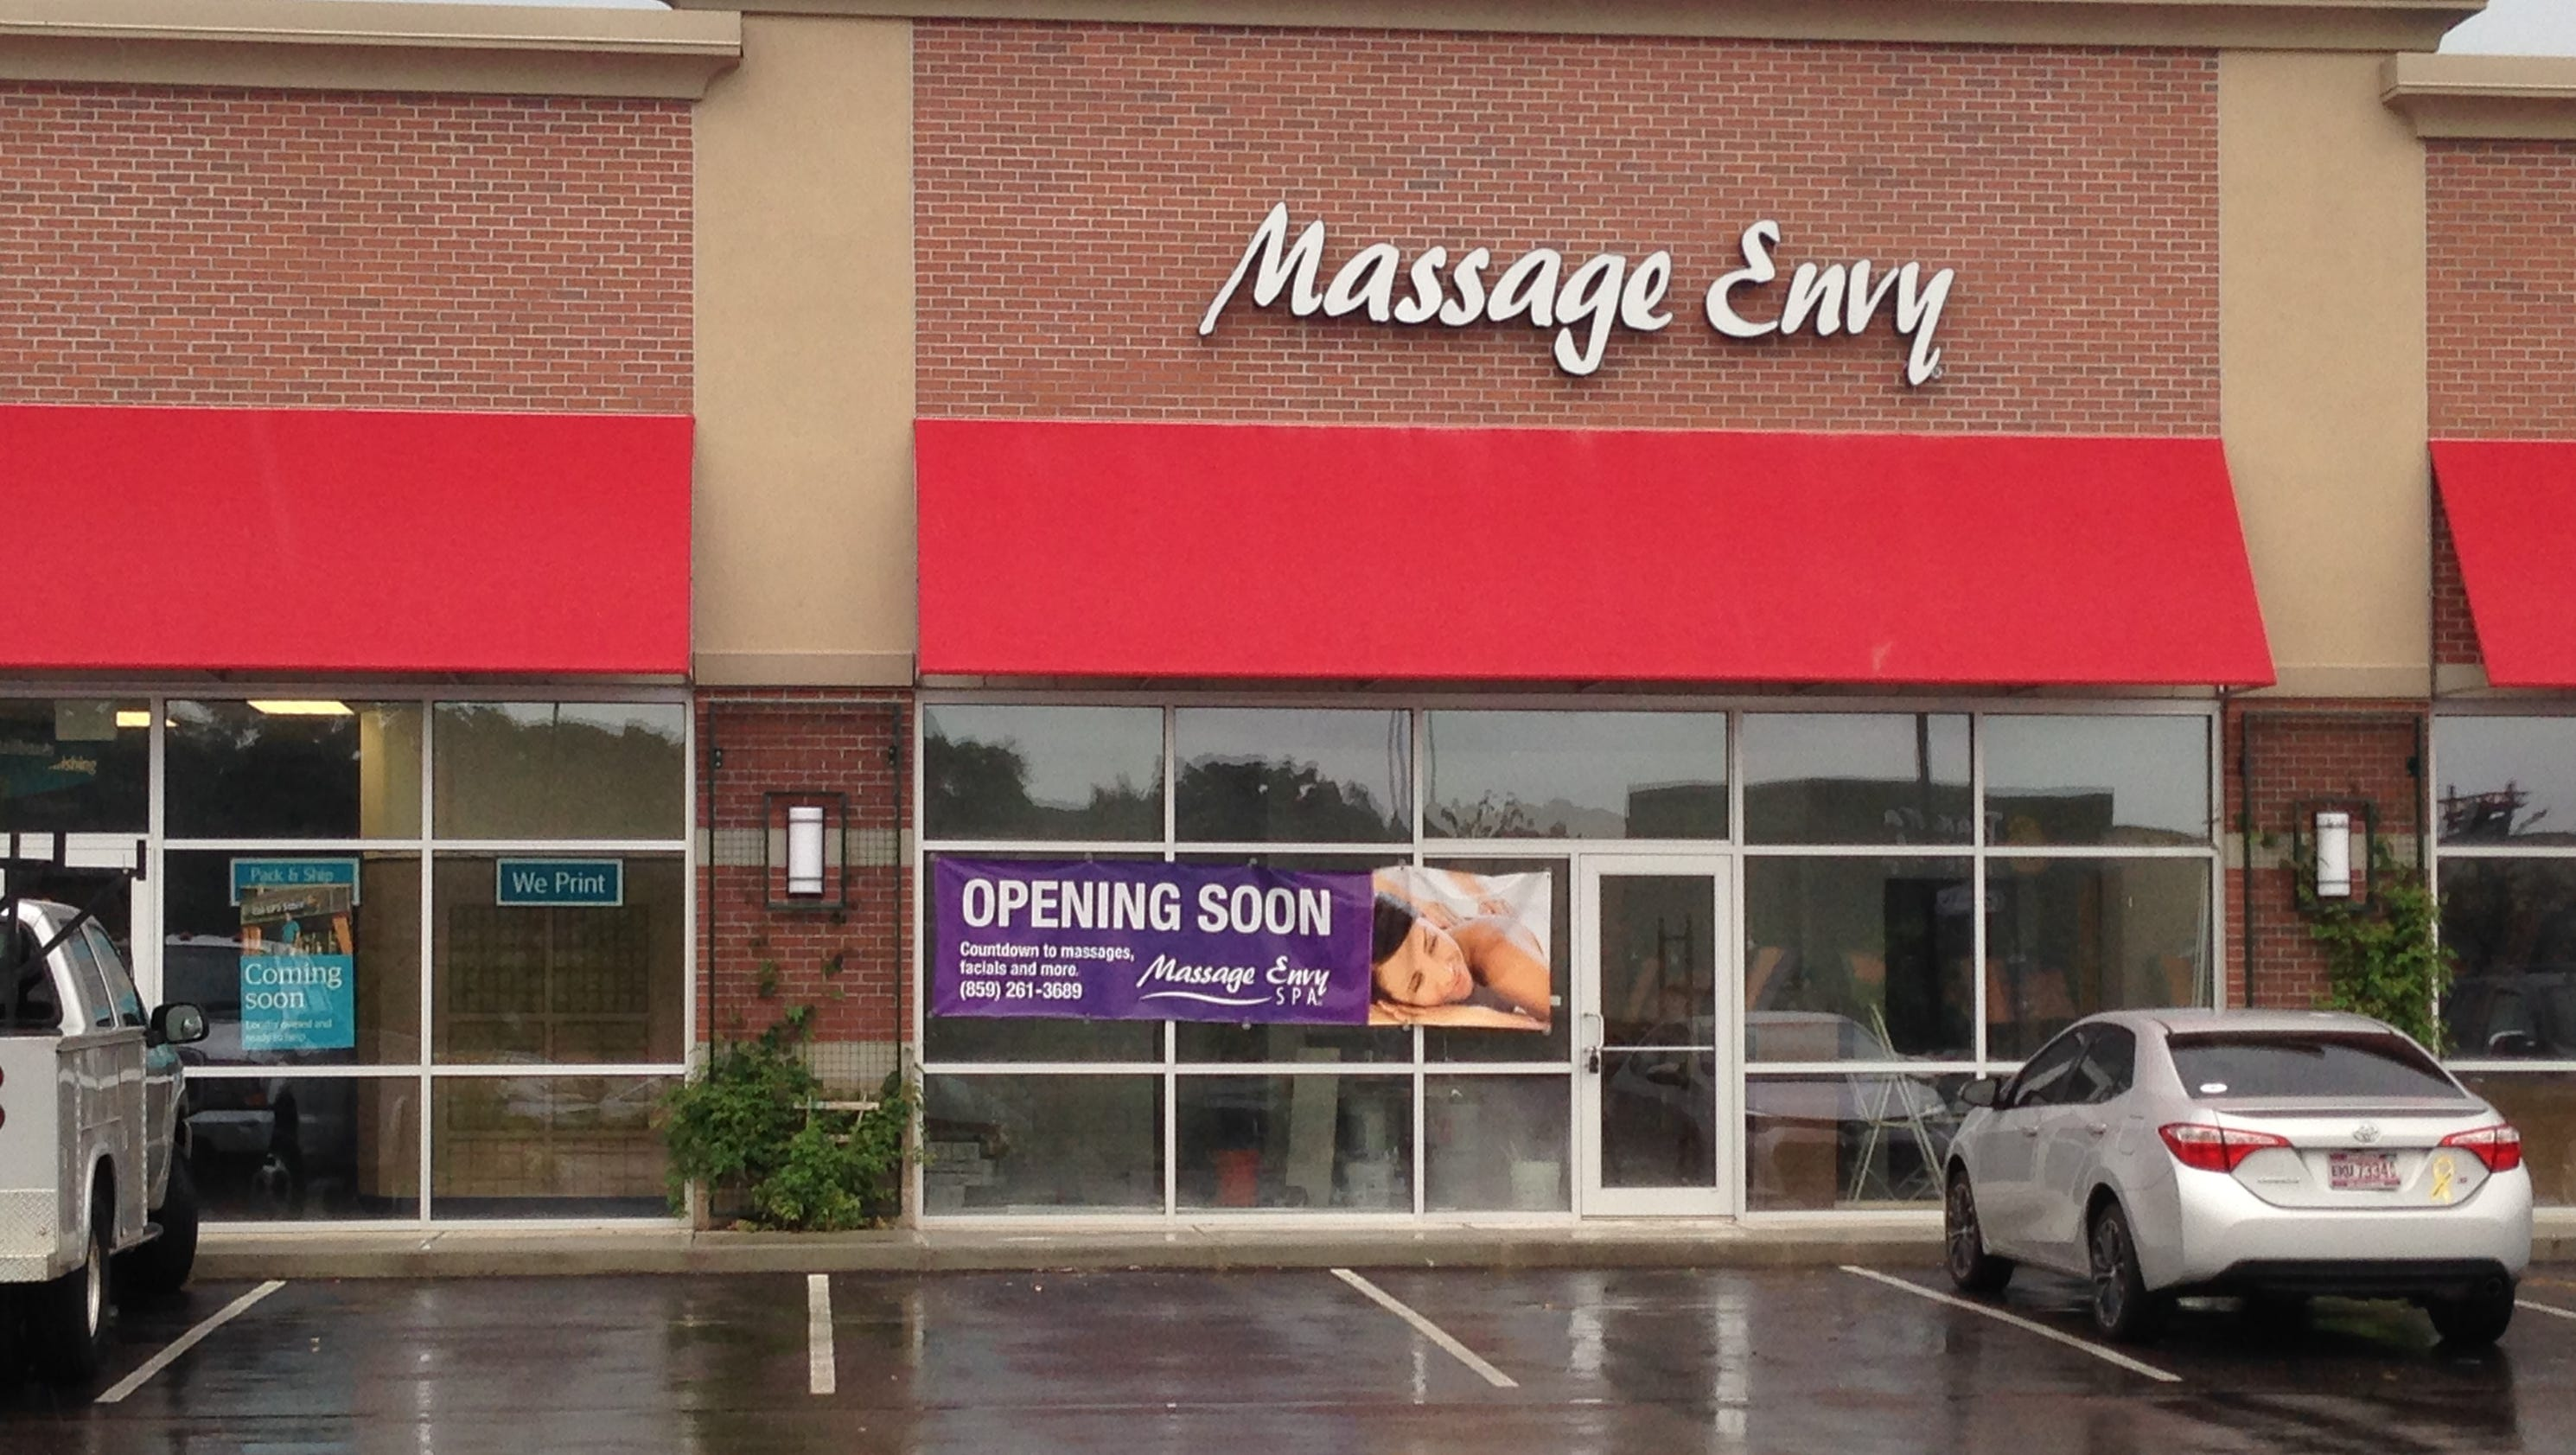 story news local massage envy piscataway